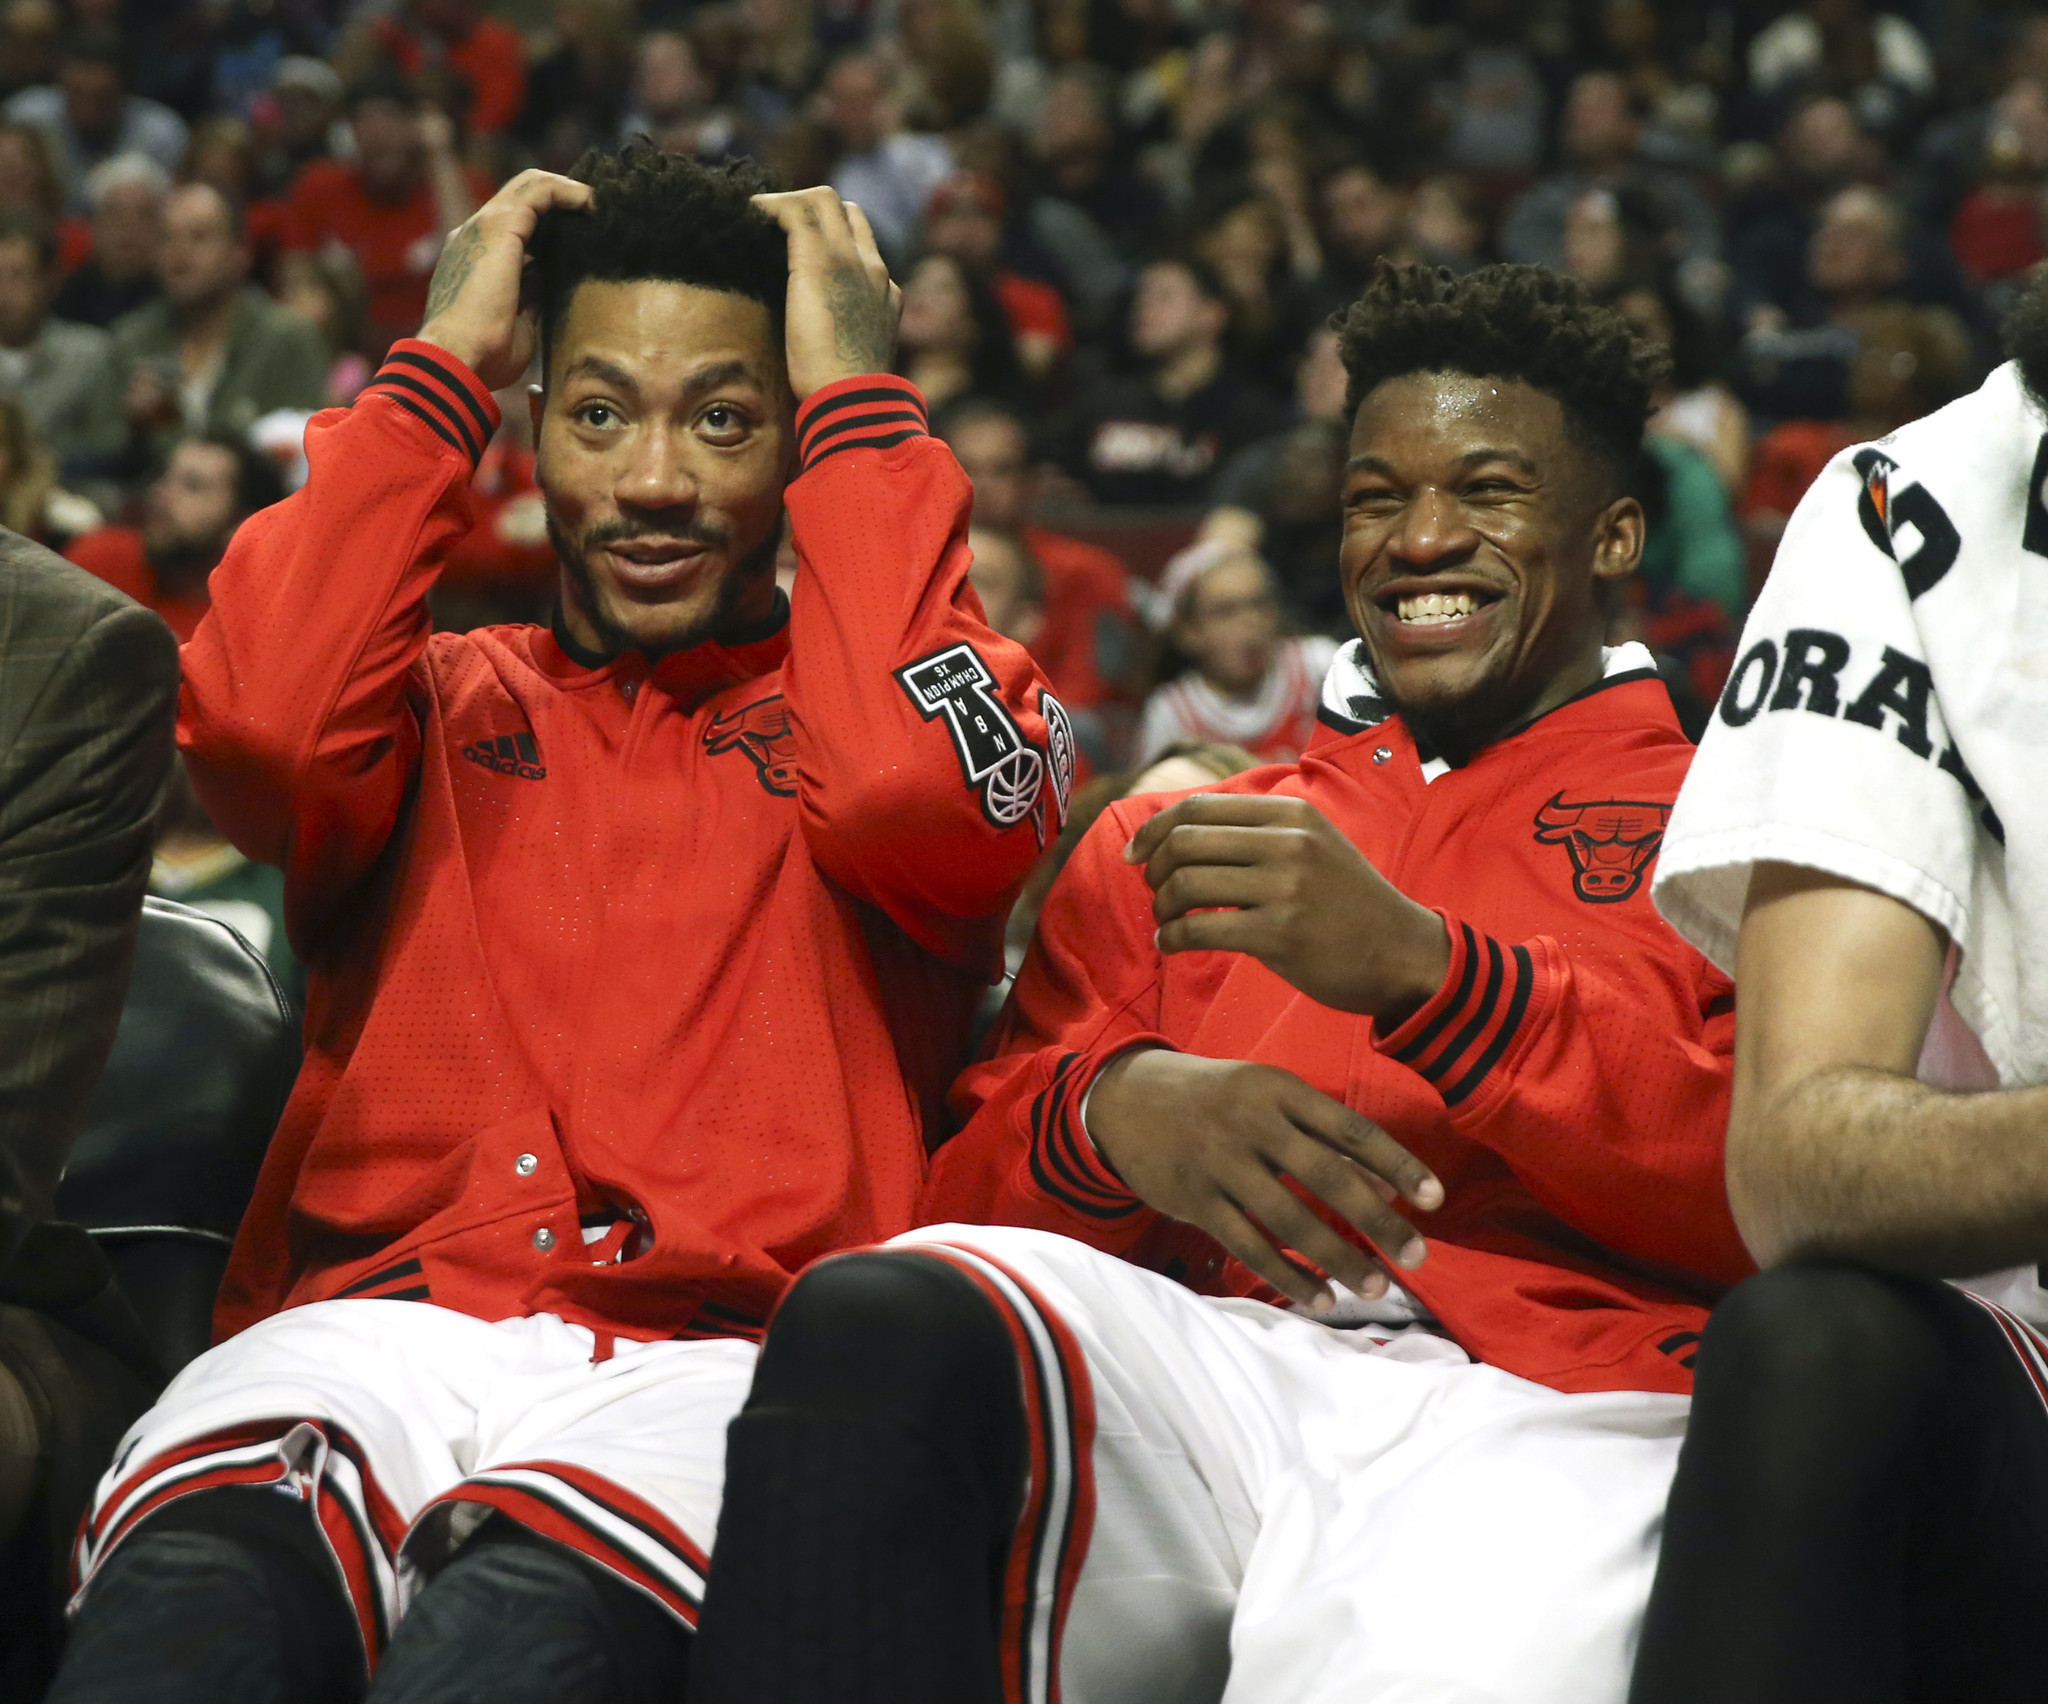 Jalen Rose says Derrick Rose takes a backseat to Jimmy Butler